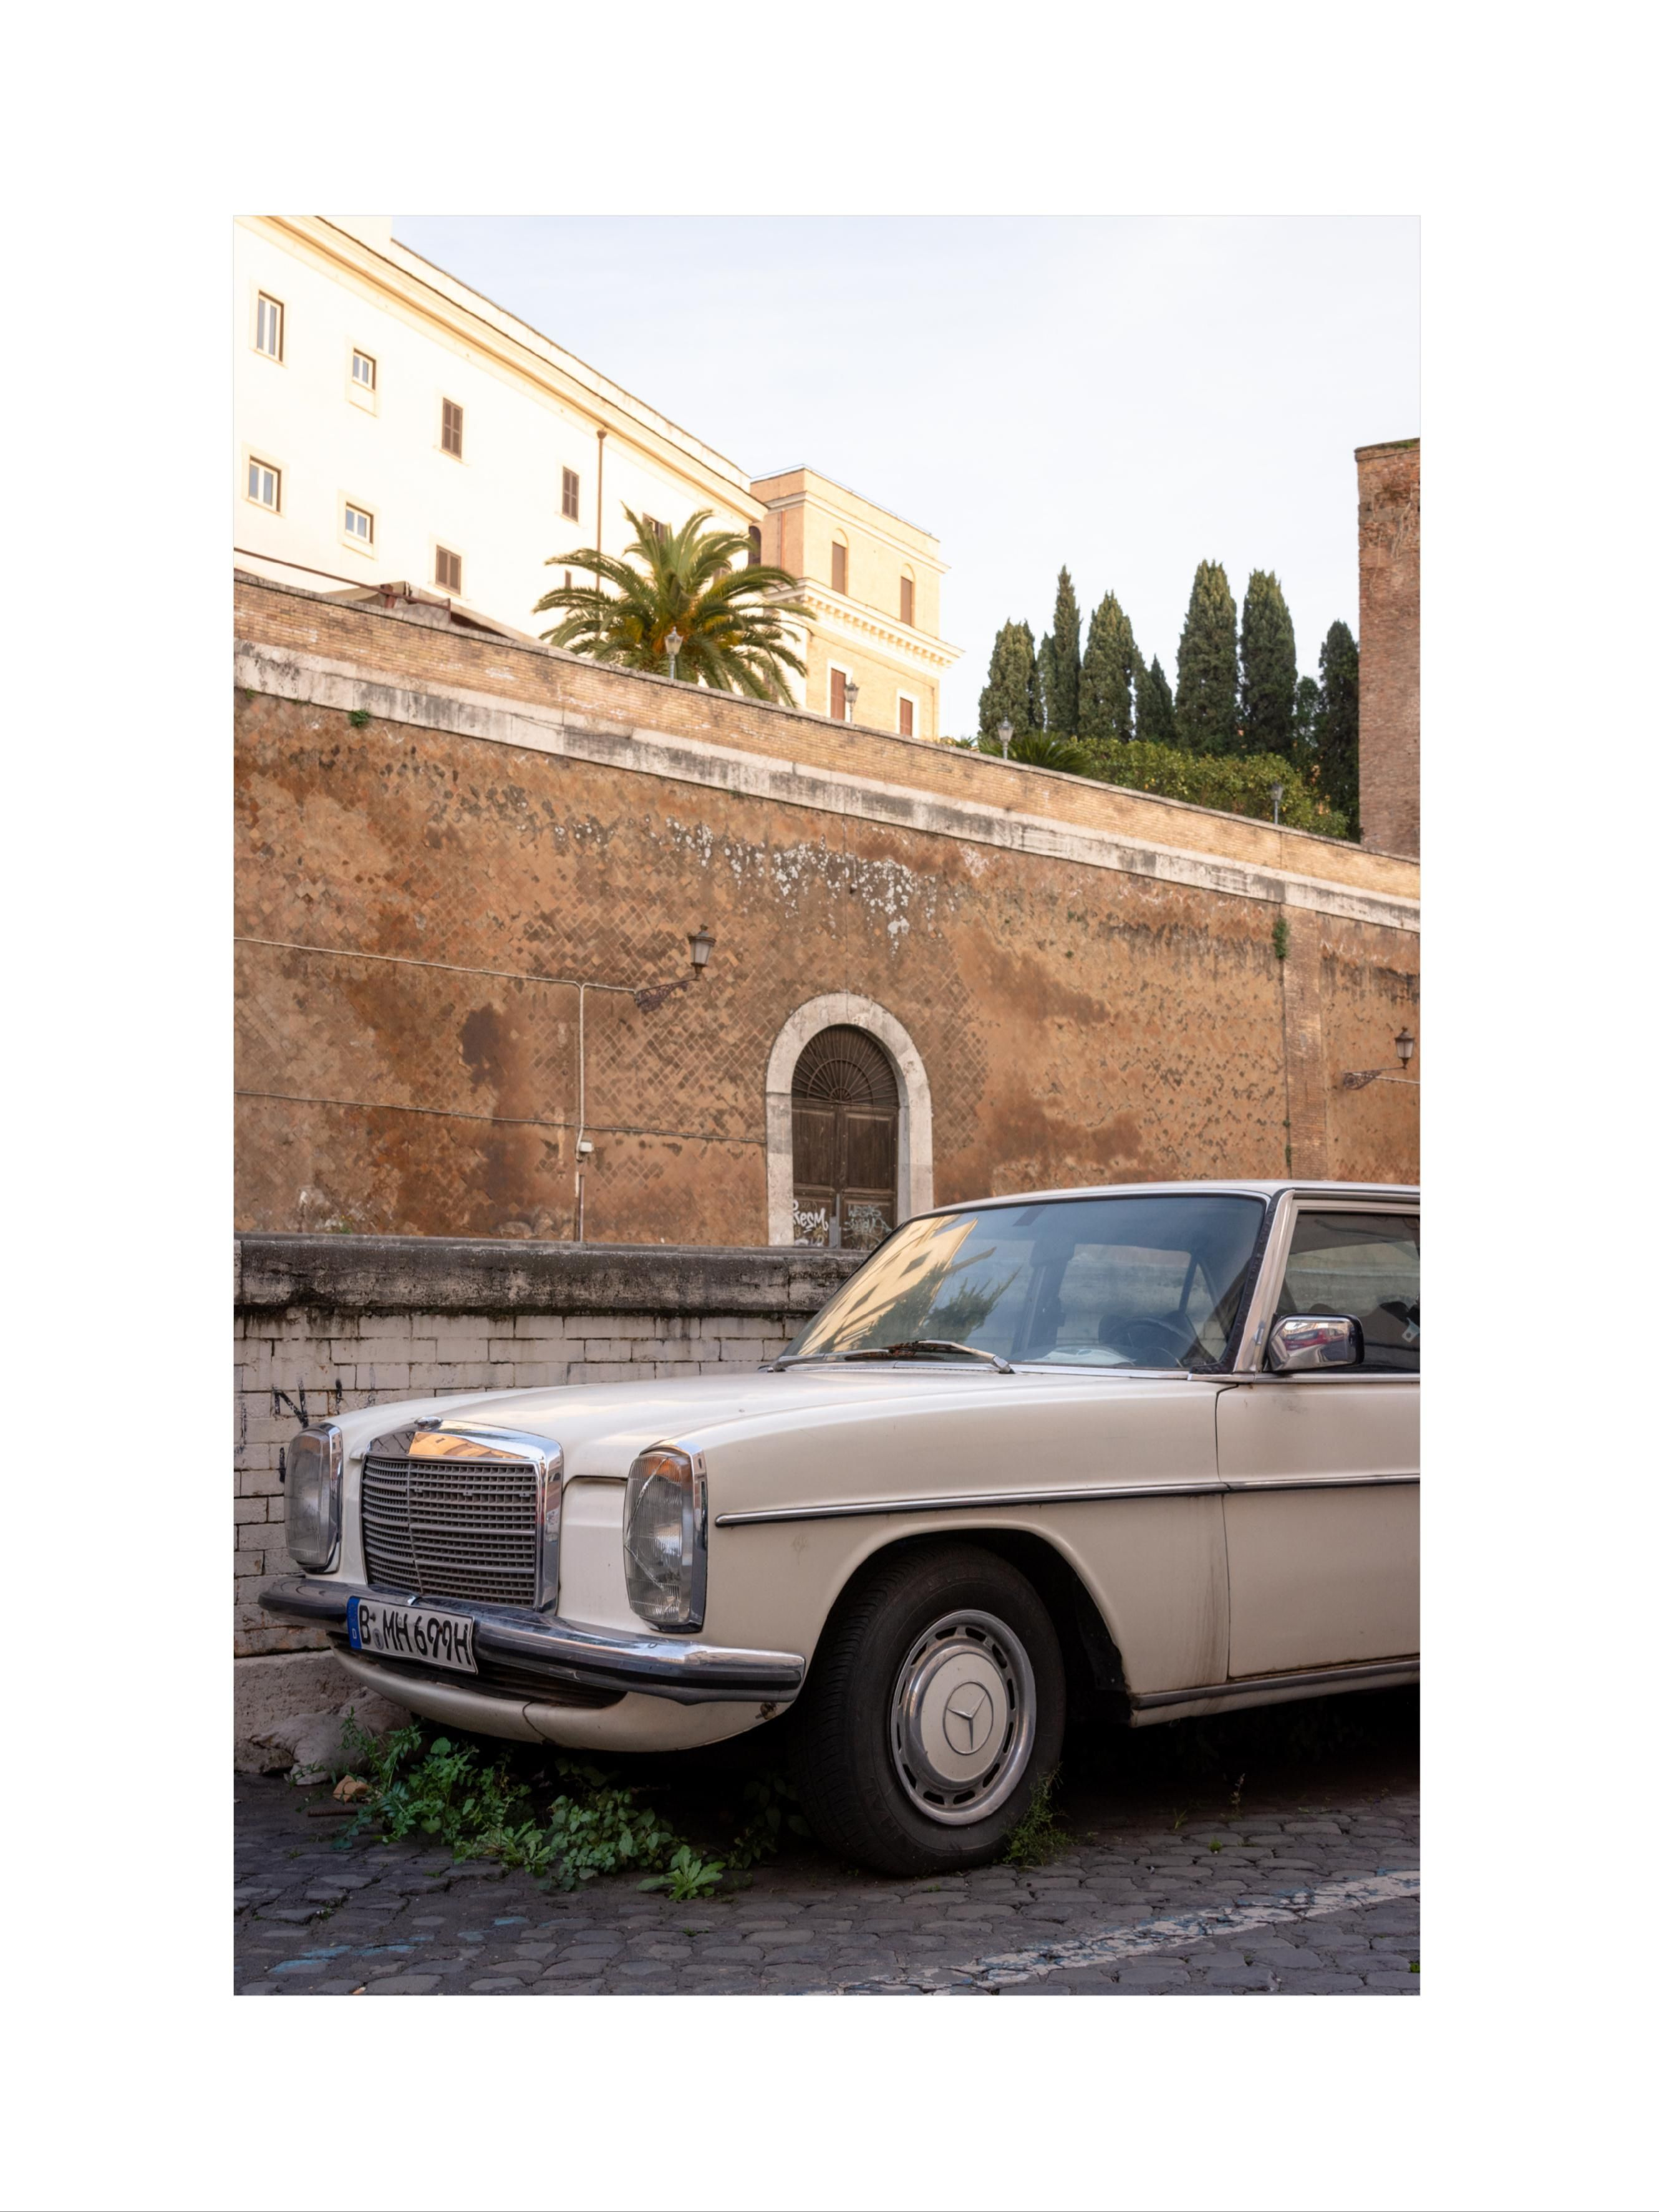 Old Mercedes In Rome D7200 24 120 F4 Nikon Photography Inspiration Profilepicture Beachpicture Pictureideas Wal Old Mercedes Beach Pictures Photography